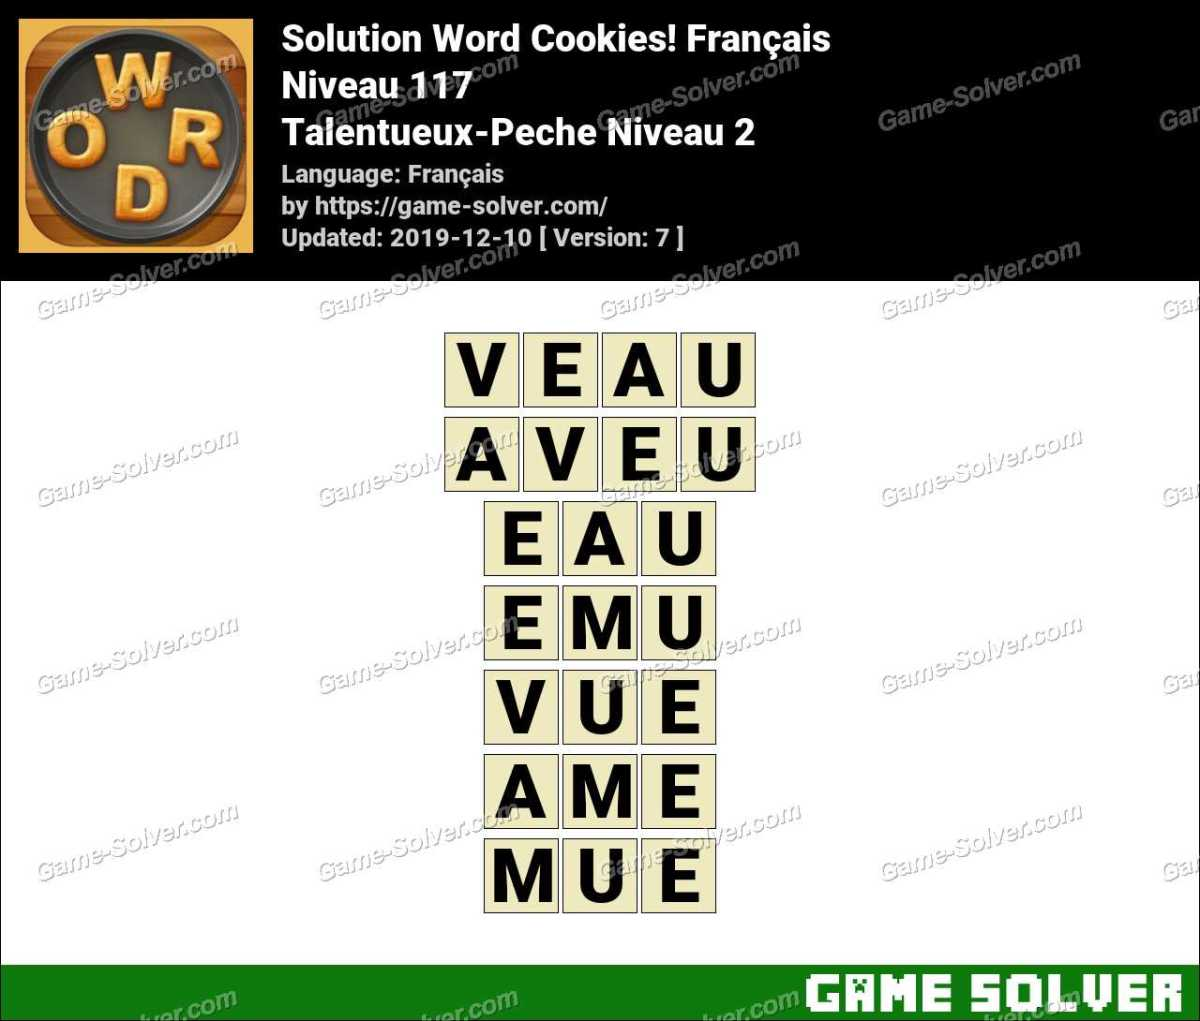 Solution Word Cookies Talentueux-Peche Niveau 2